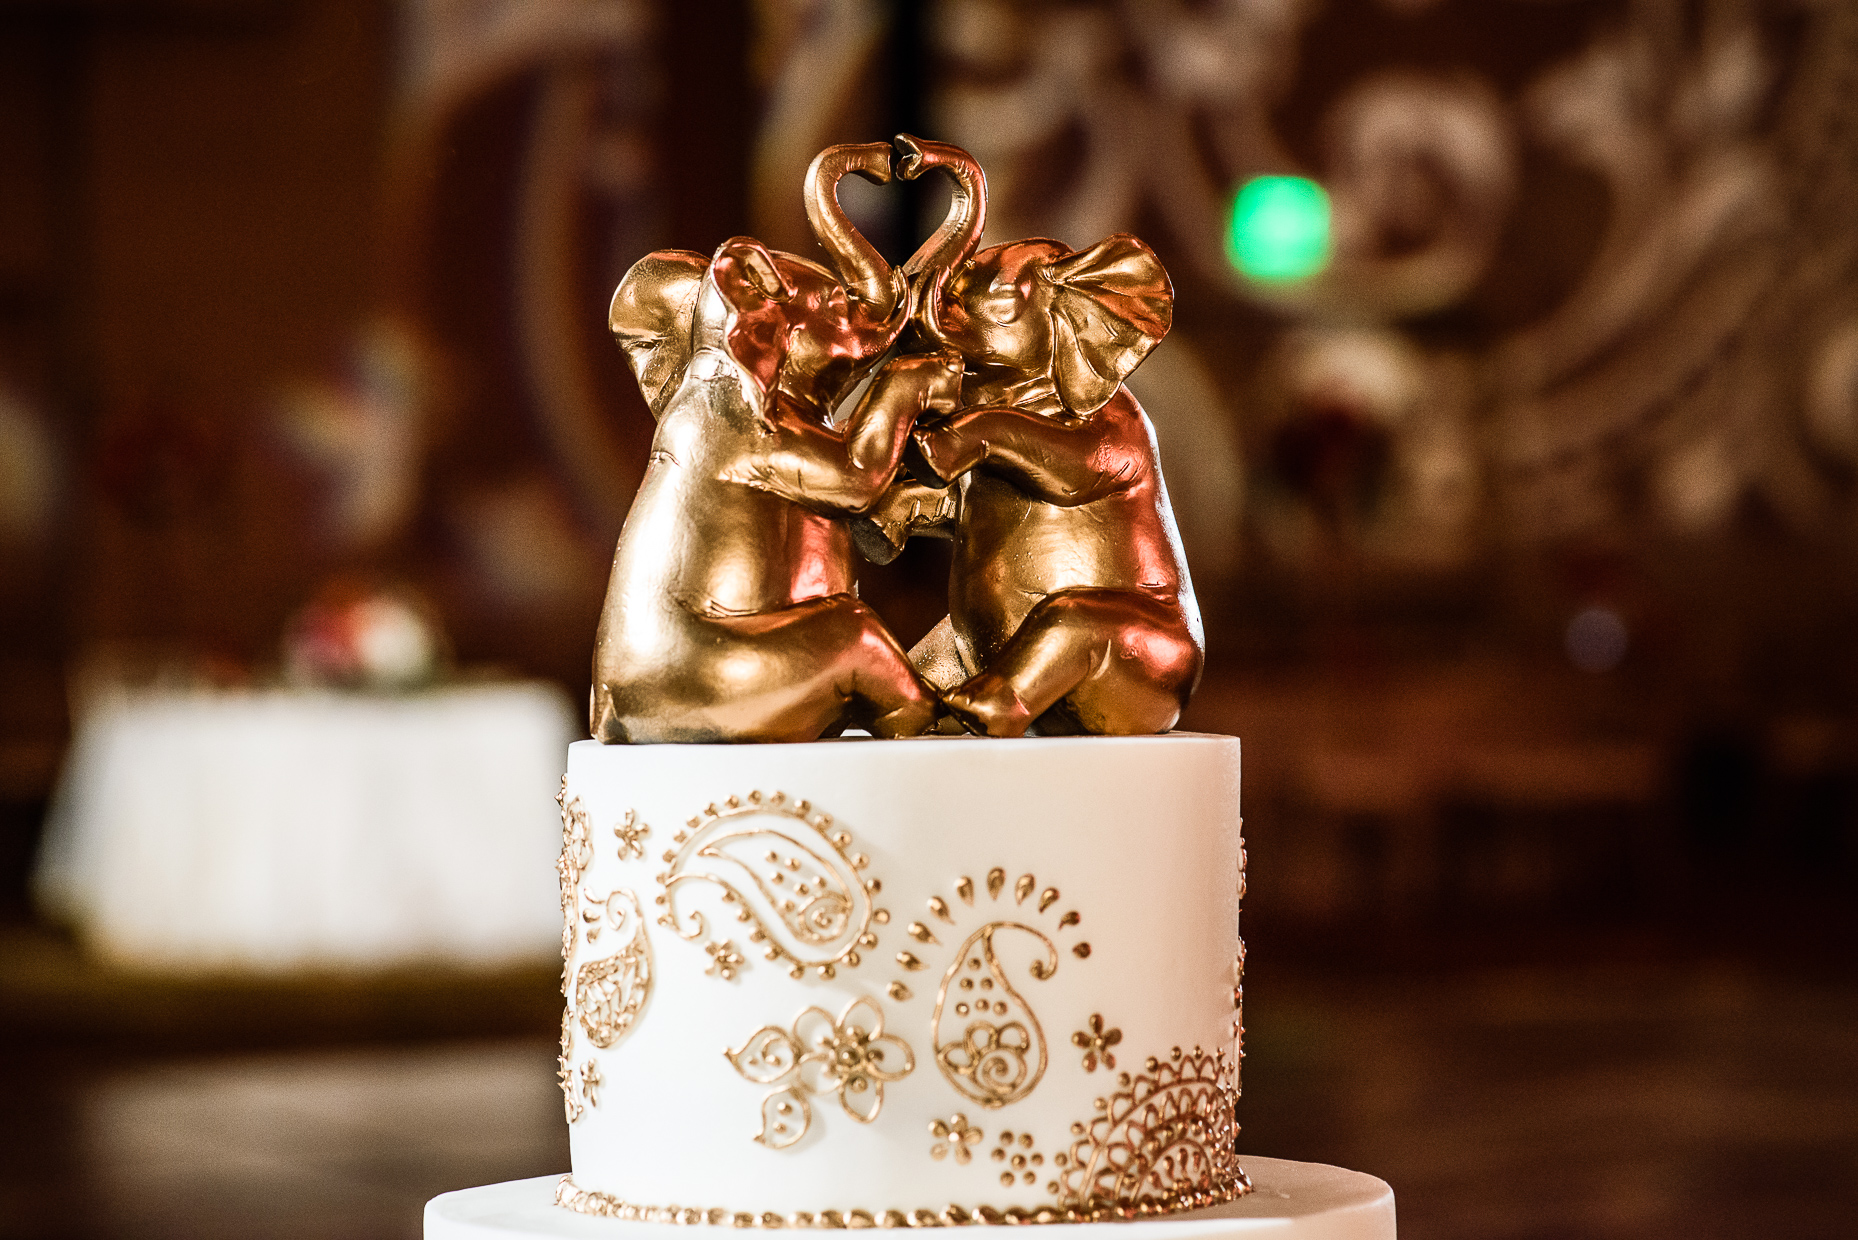 Austin-Wedding-Photographer-Lost-Pines-Hyatt-cake-detail-topper